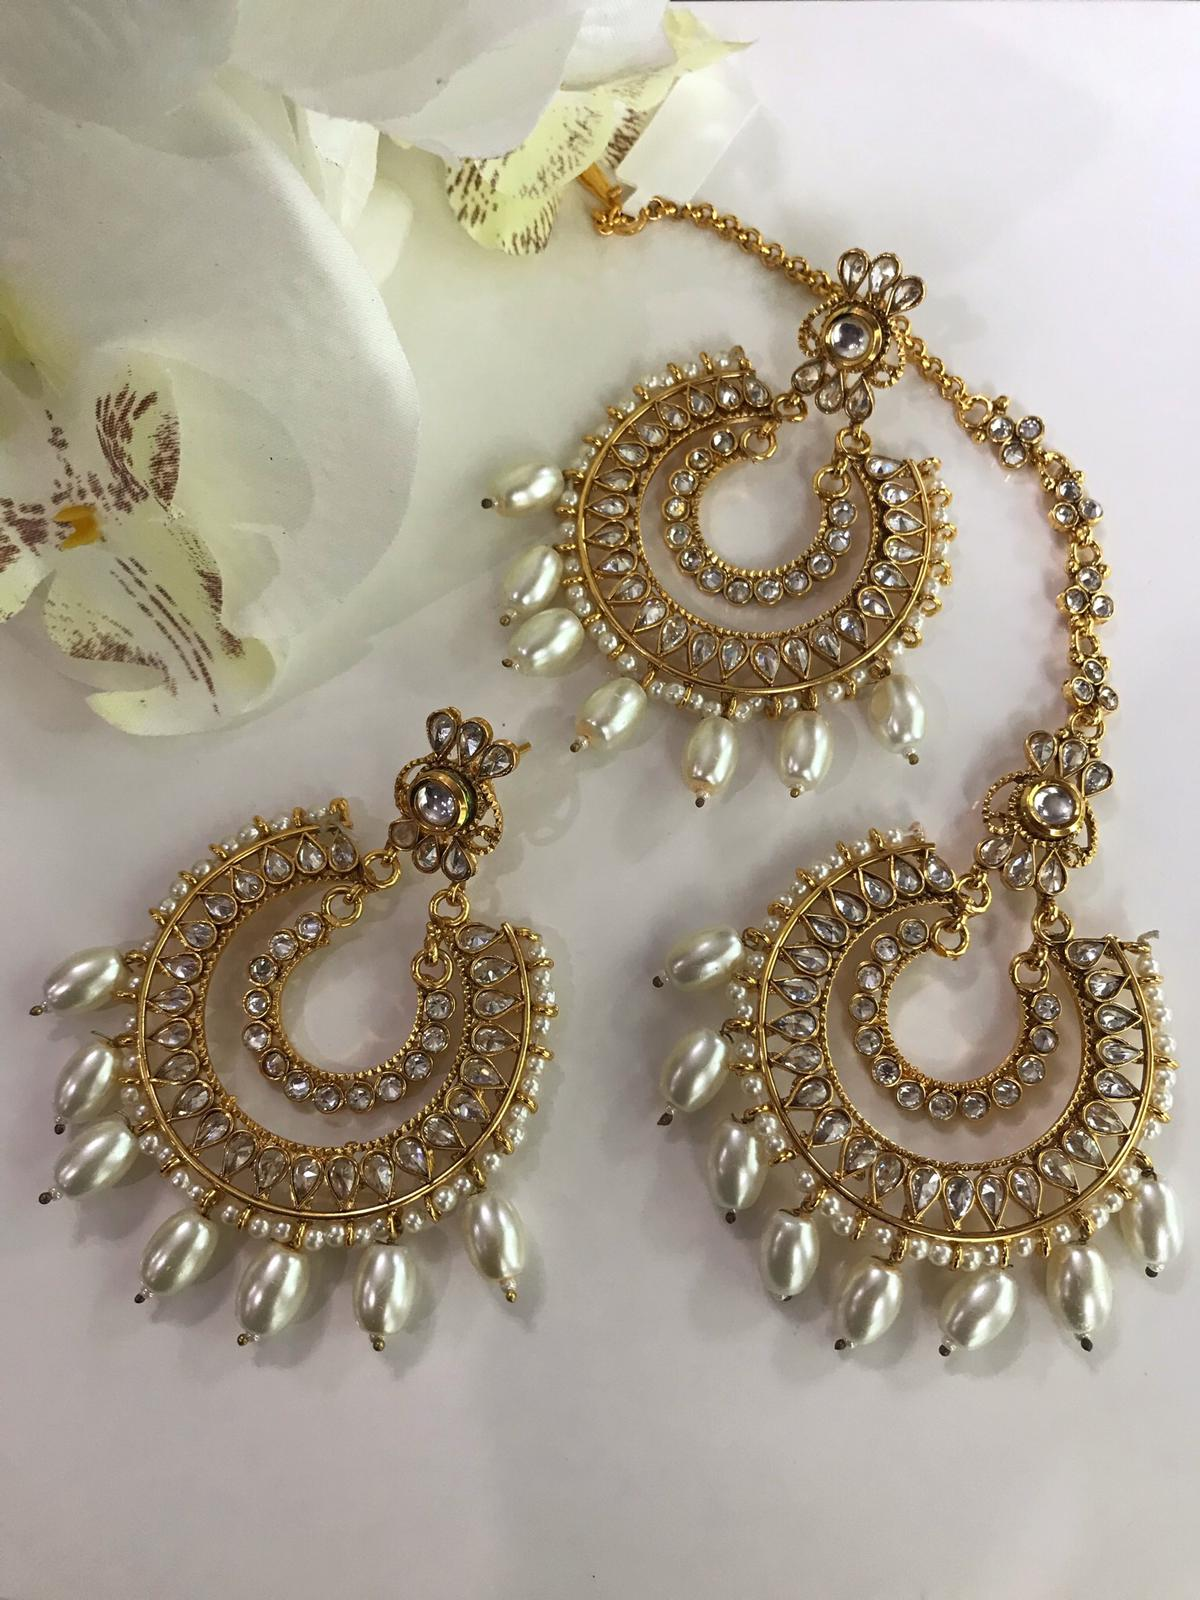 Exclusive Maang Tikka Designed In Stones And Pearls With Matching Earrings